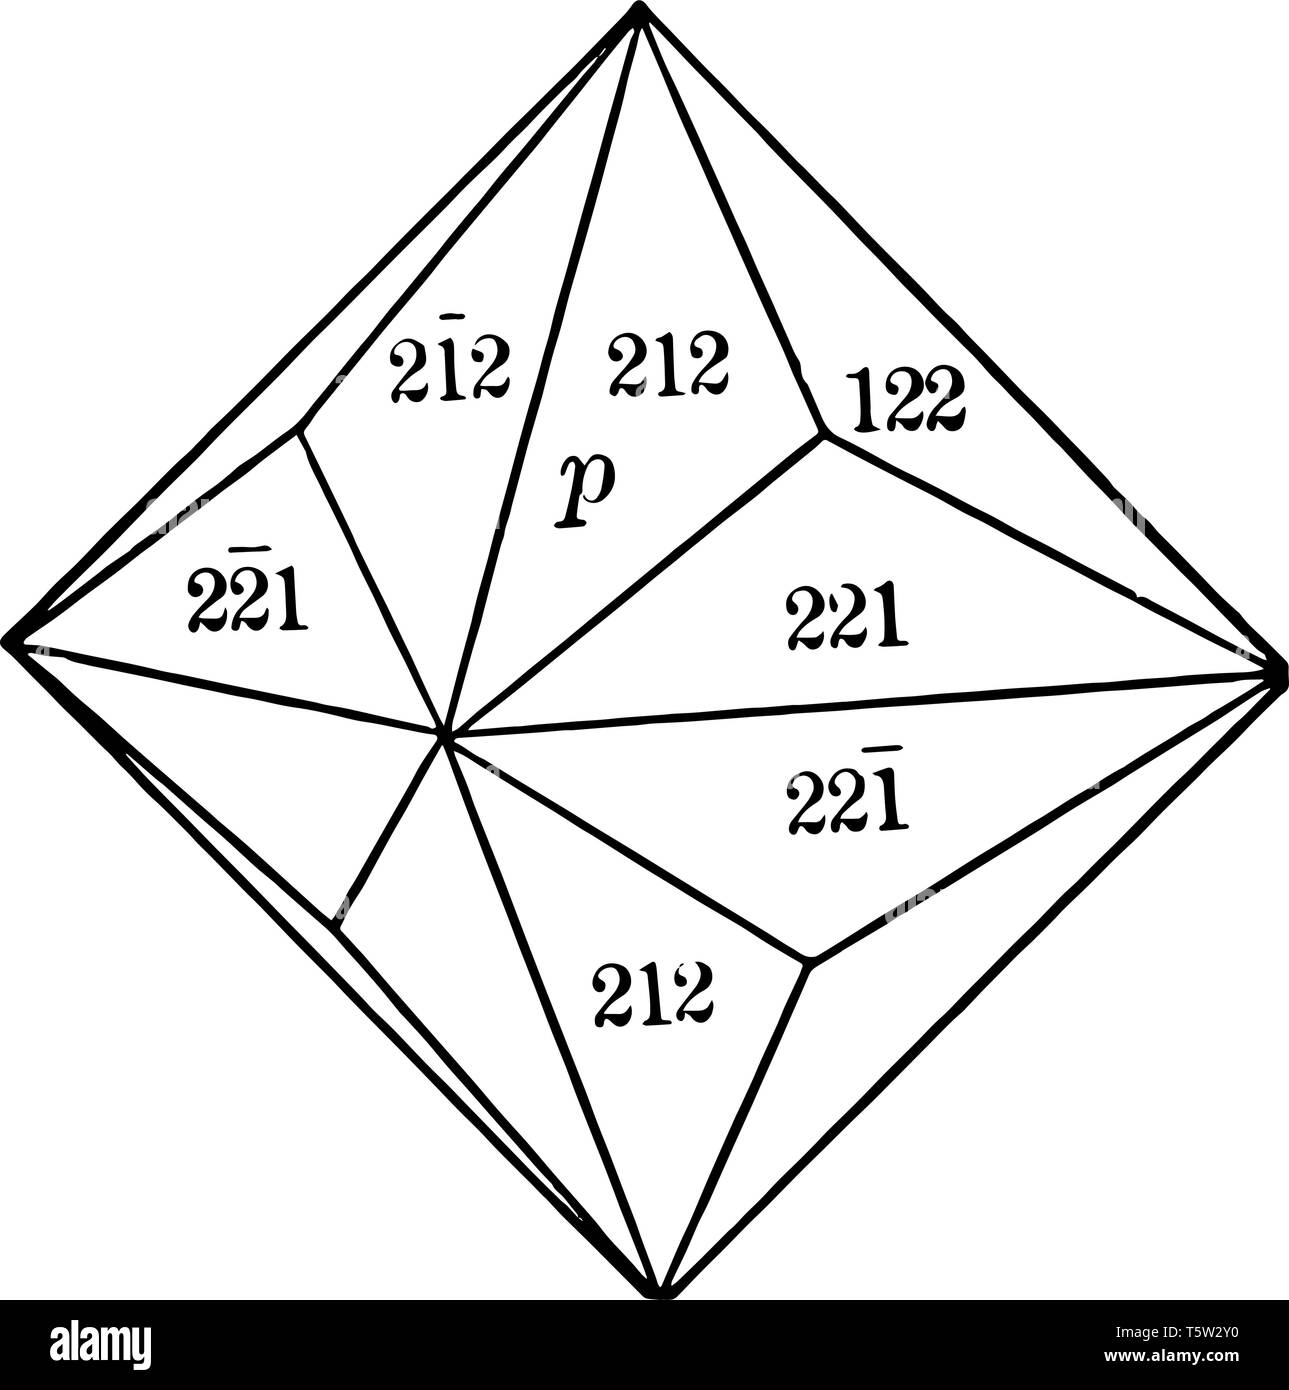 hight resolution of a diagram of trisoctahedron it is a form composed of twenty four triangular isosceles faces each of which crosses two of the crystallographic axes i